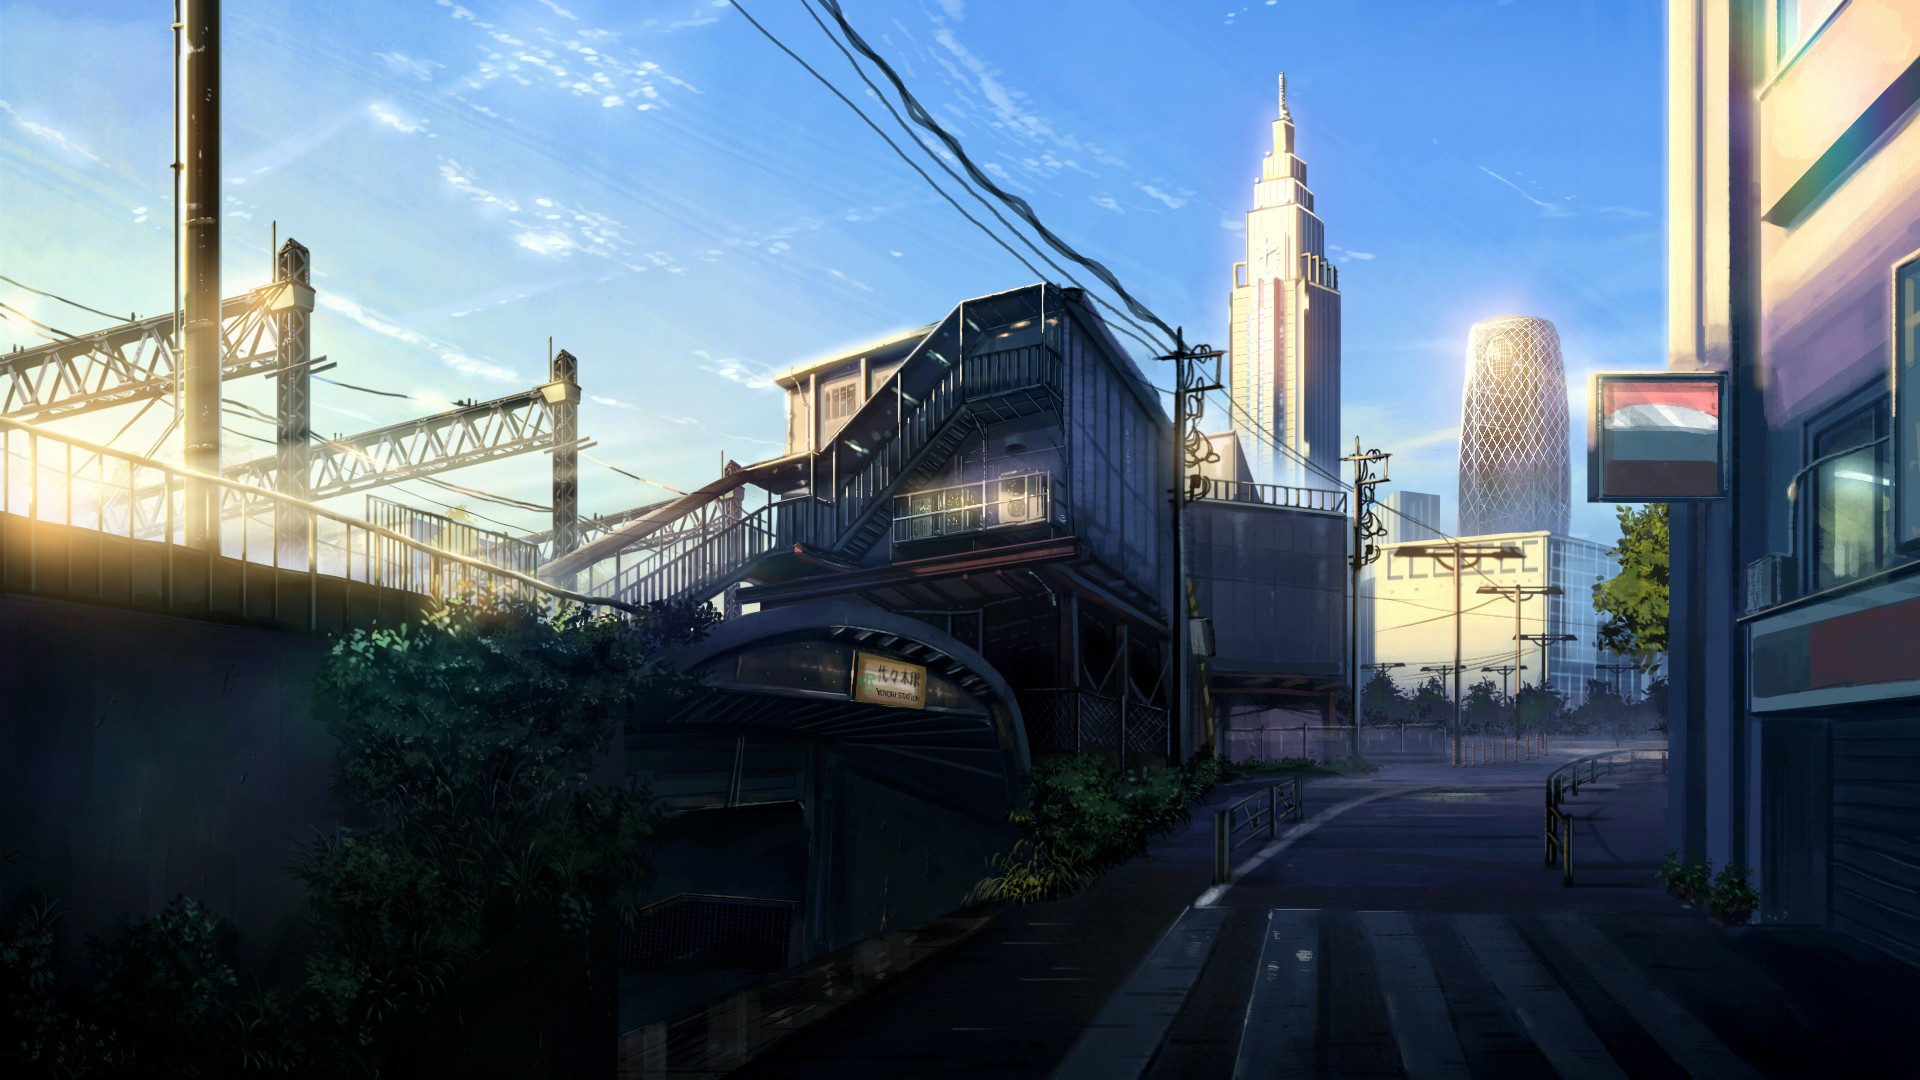 anime-city-road-architecture-1080P-1920×1080-wallpaper-wp3602597